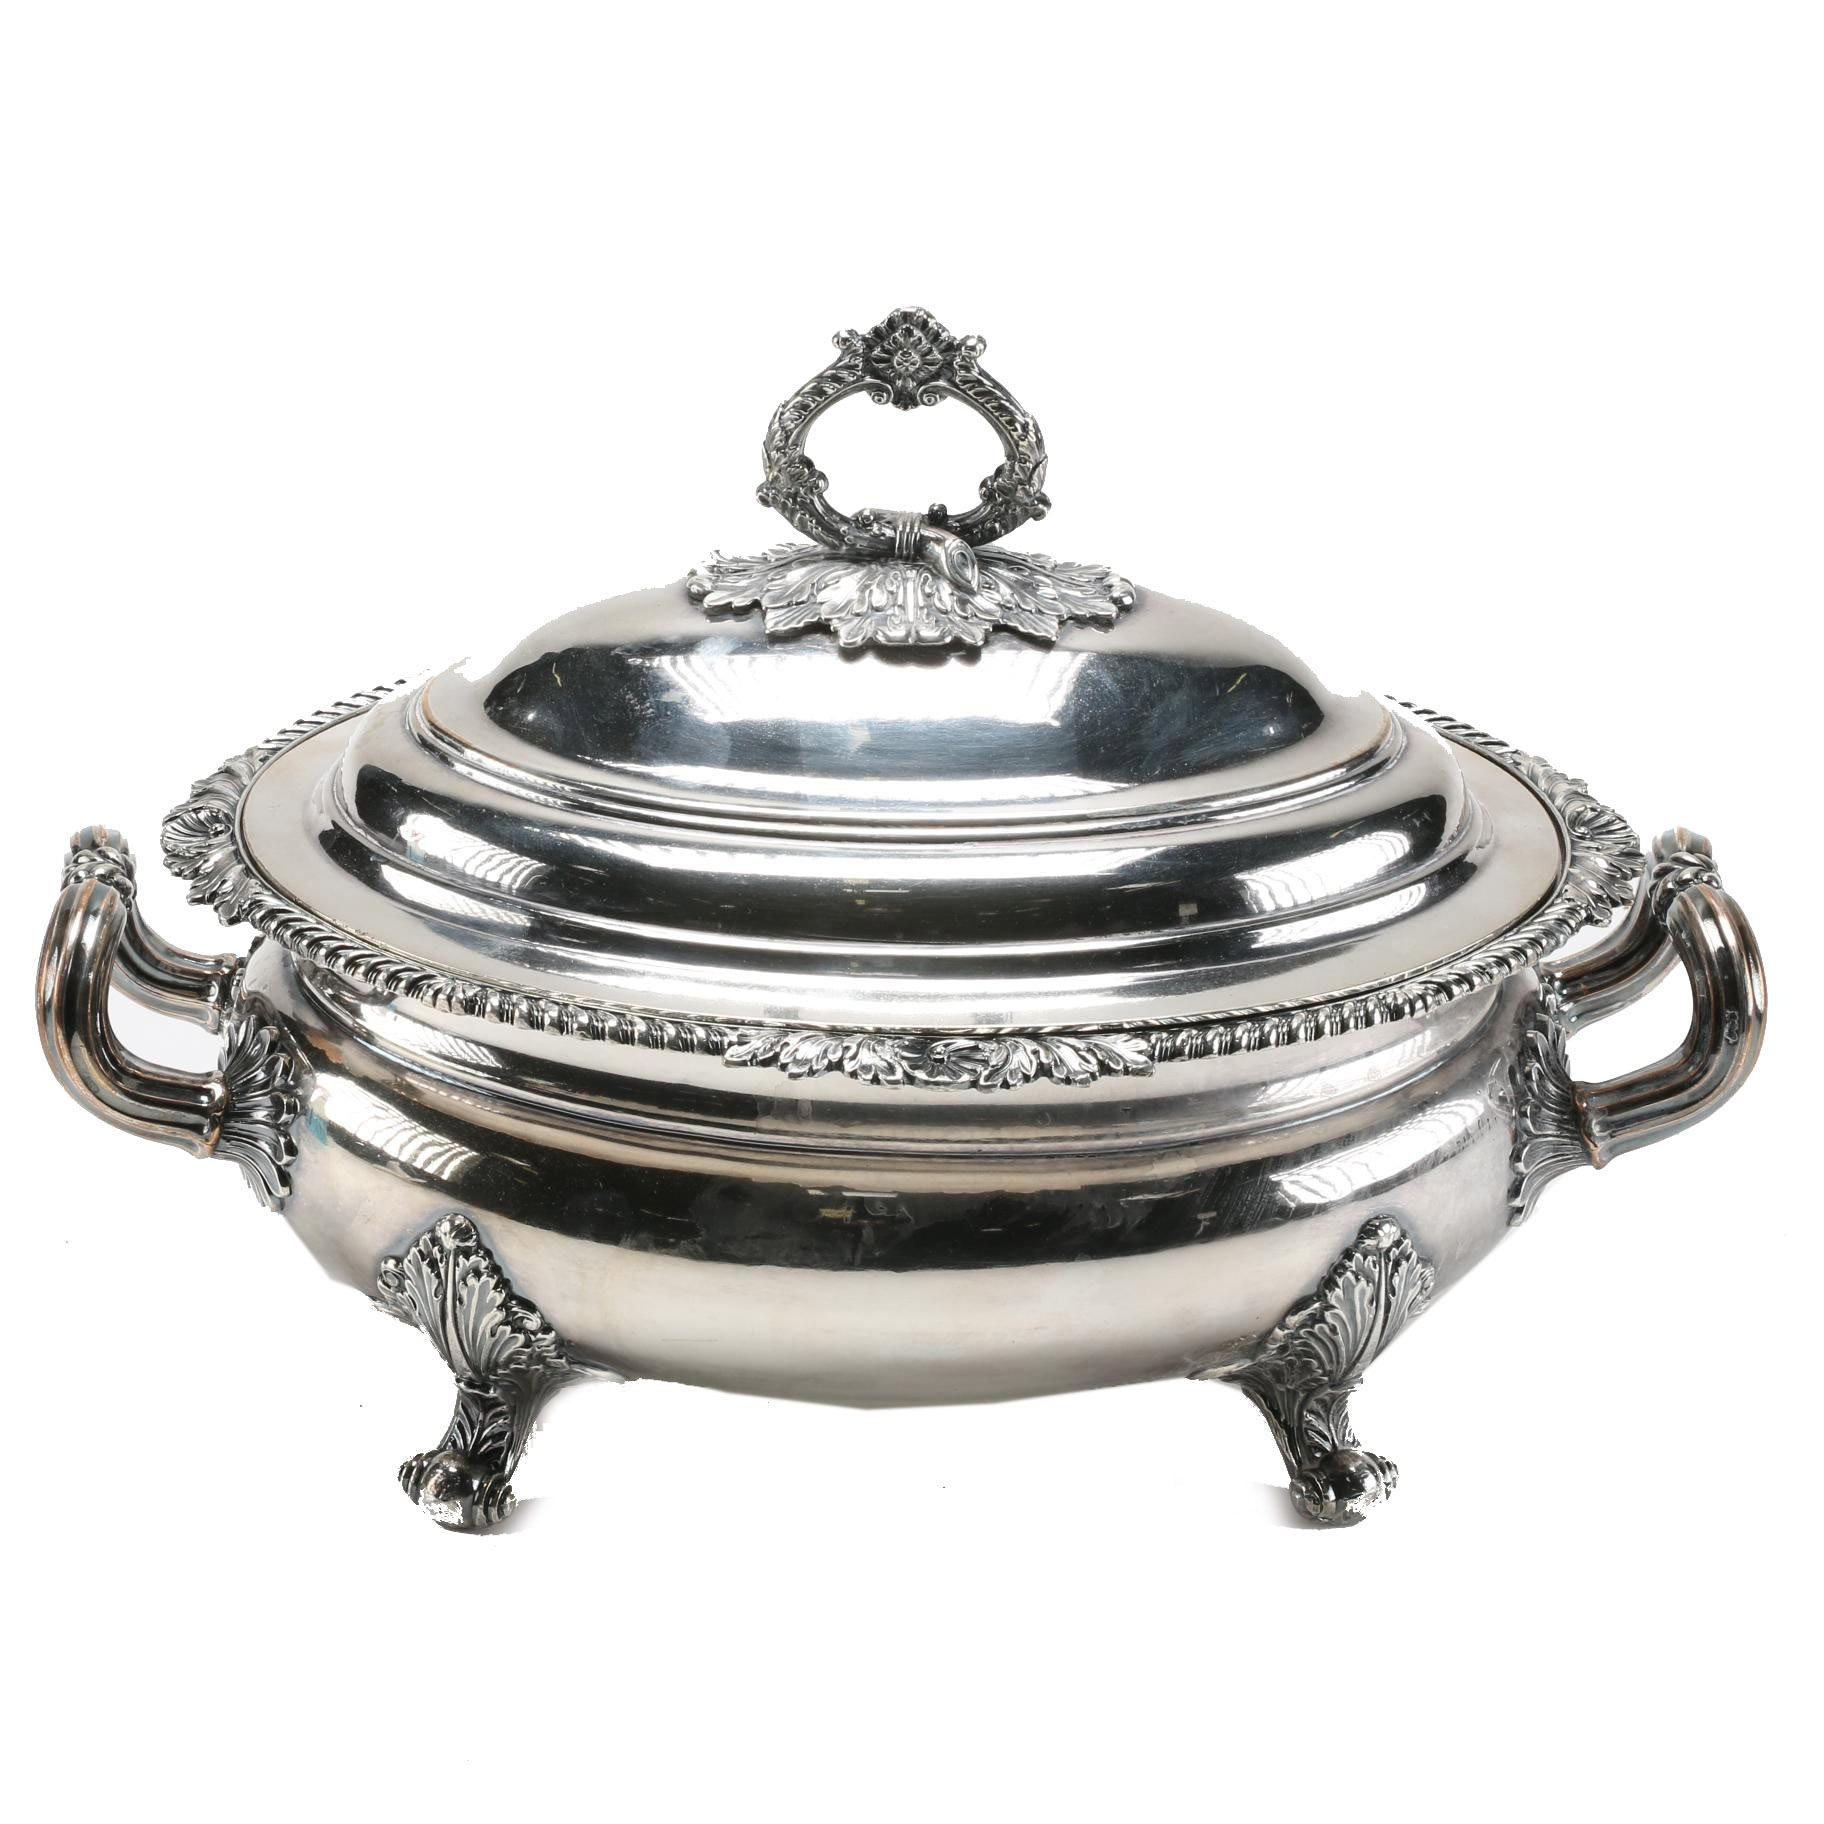 Antique Regency Style Silver Plated Tureen